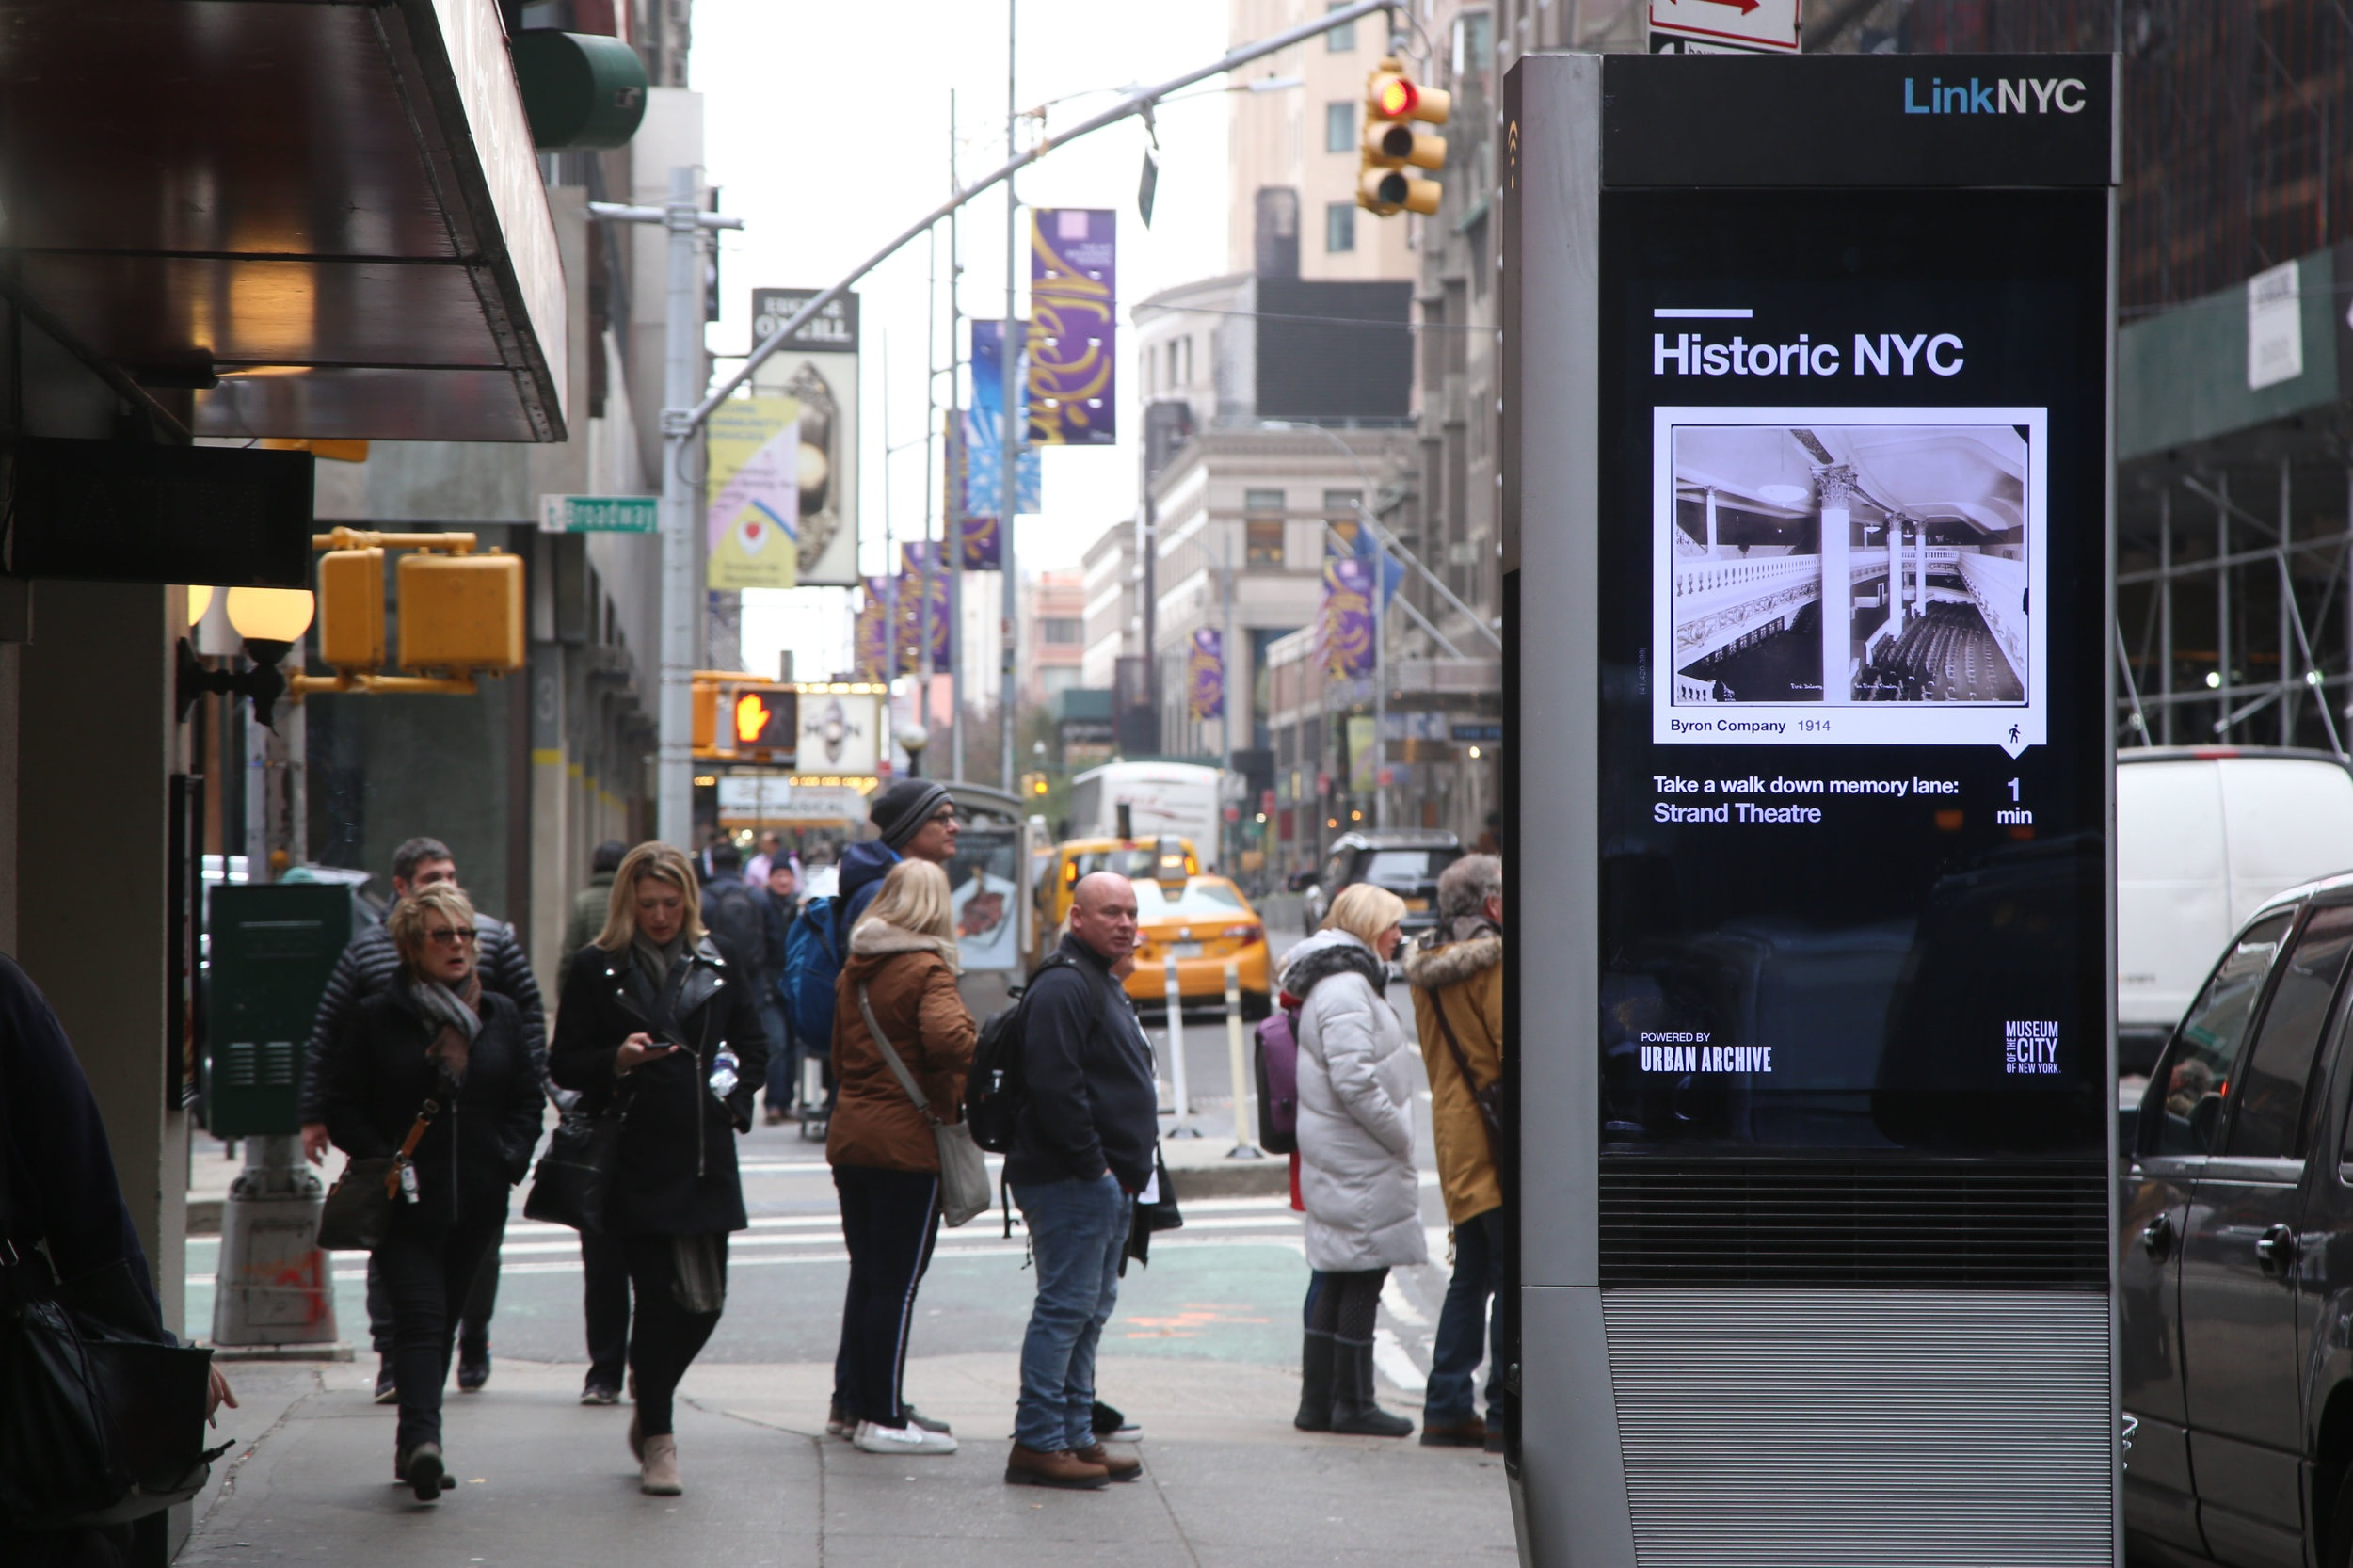 LinK NYC - Our mapping software powers new technologies, like LinkNYC kiosks, with location-based historical content.